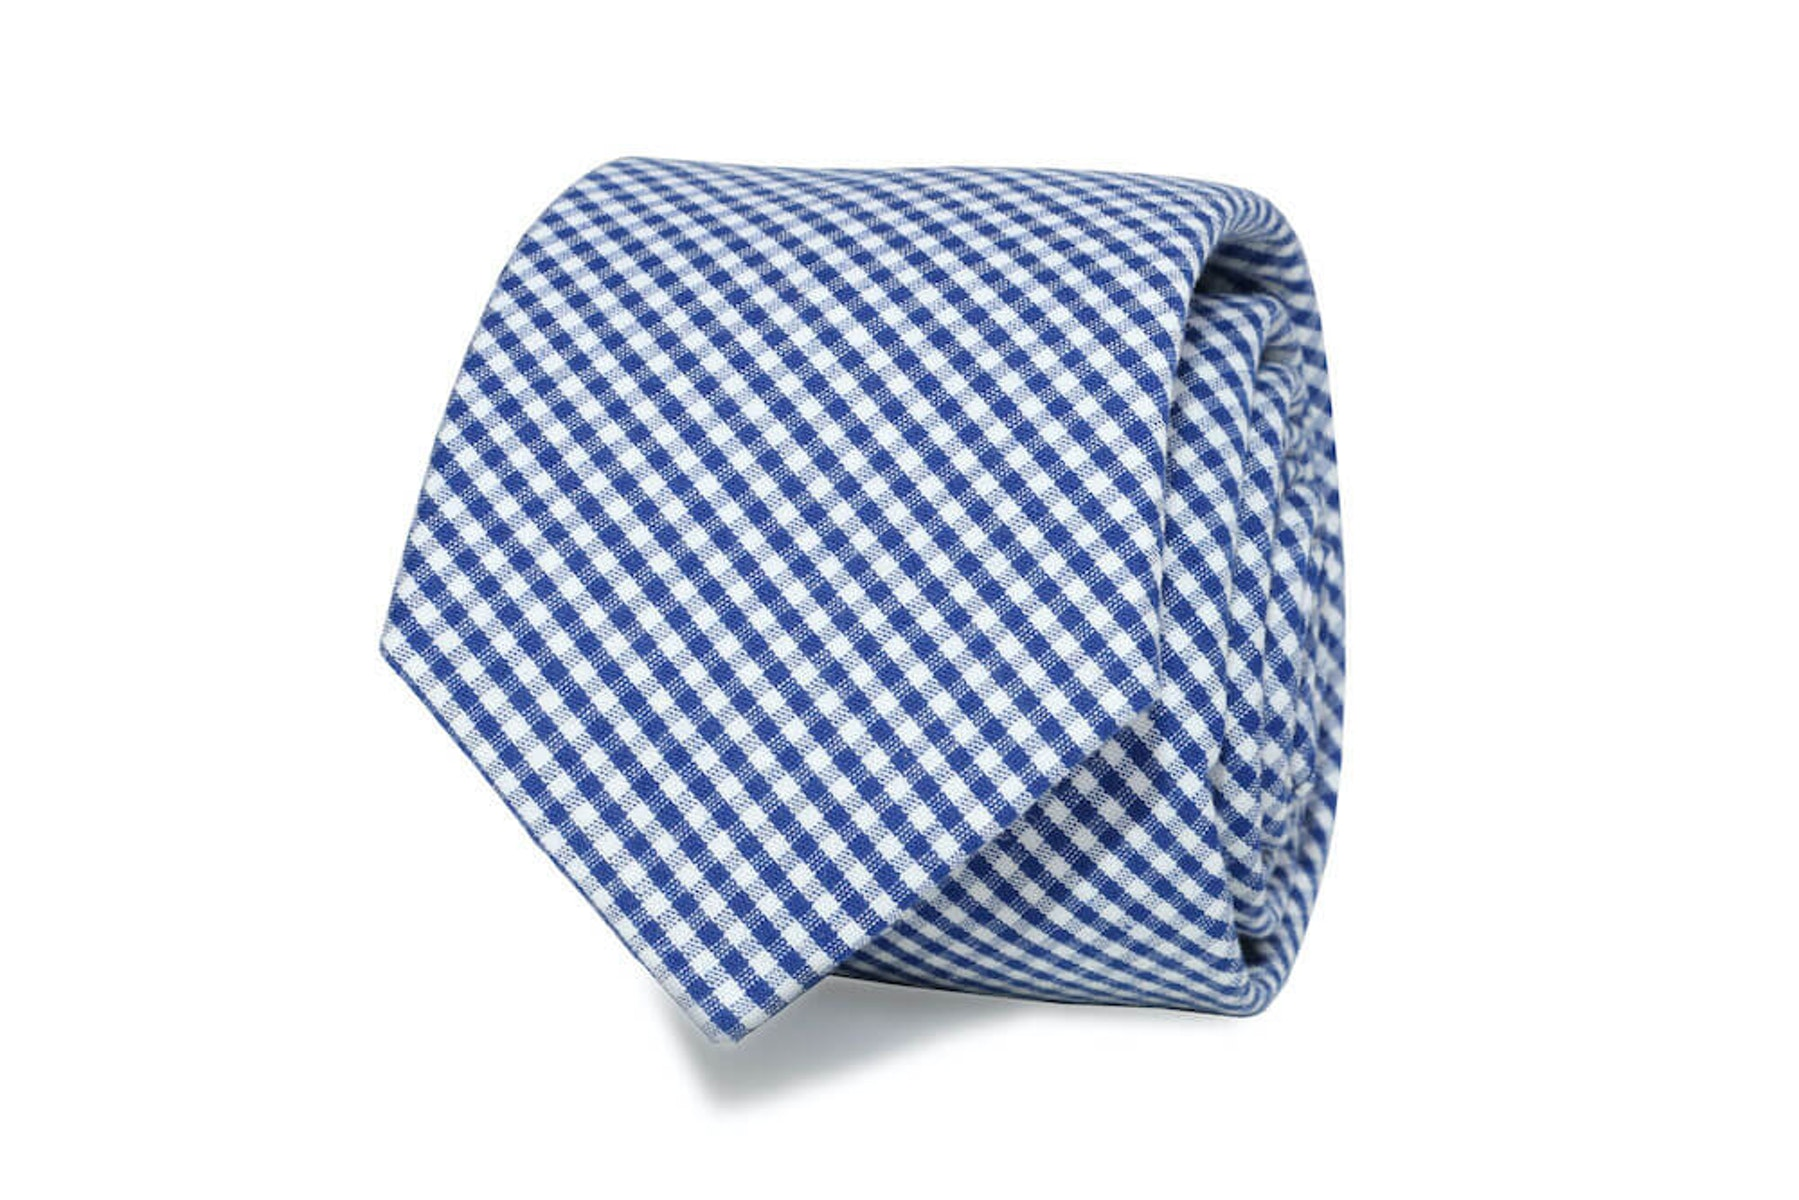 InStitchu Essentials Accessories The Dante Blue Gingham Cotton Tie